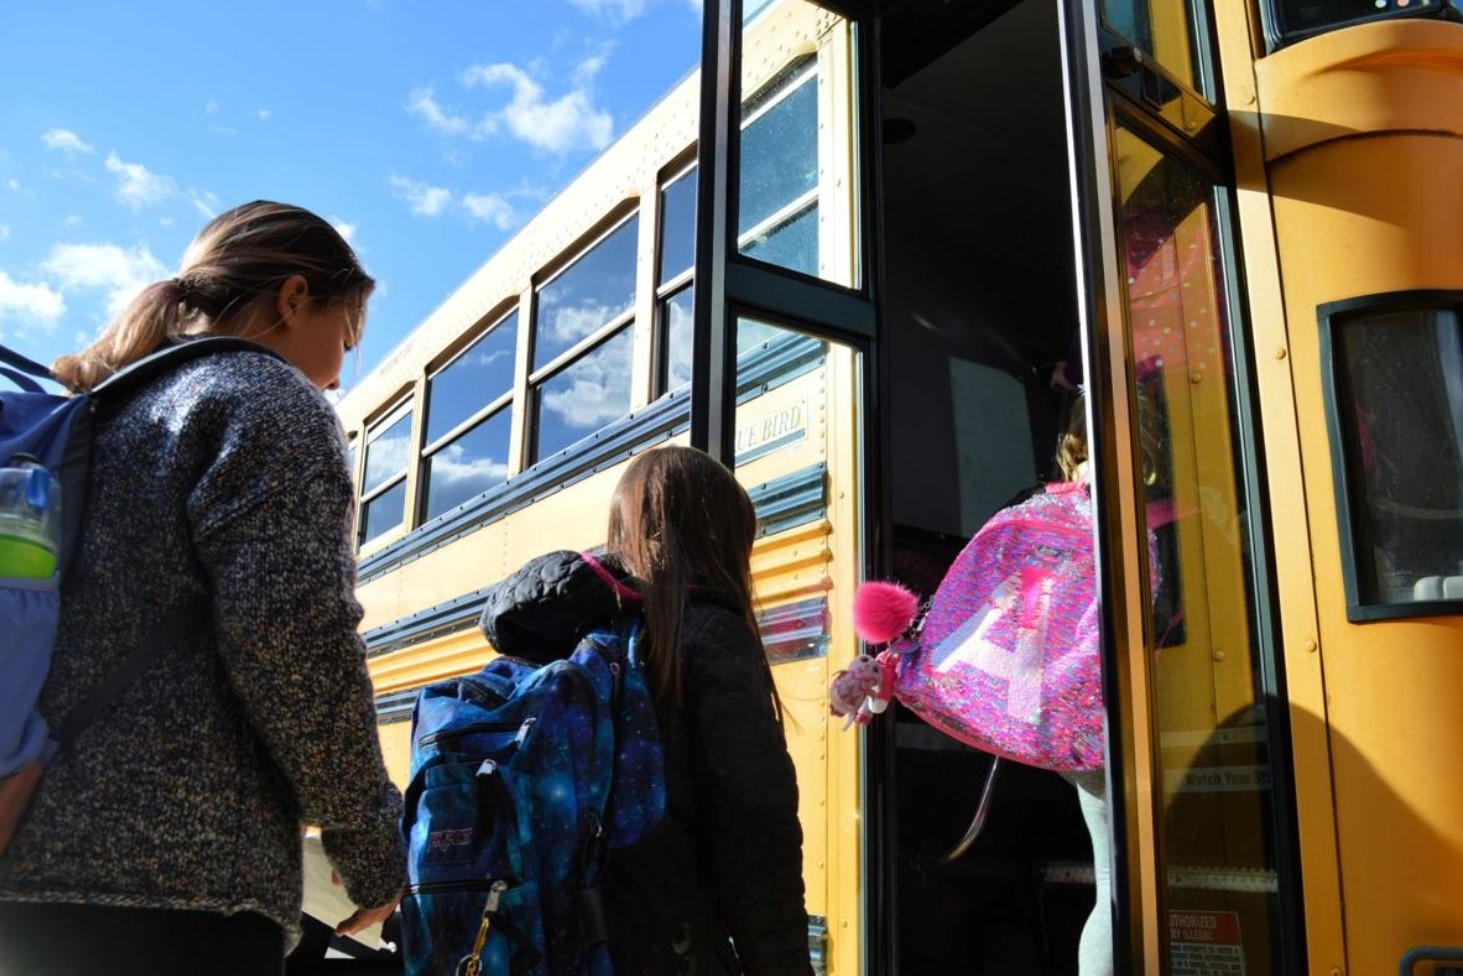 Gov. Wolf's Vow to Restructure Charter School Sector Could Benefit School Districts Like West Chester